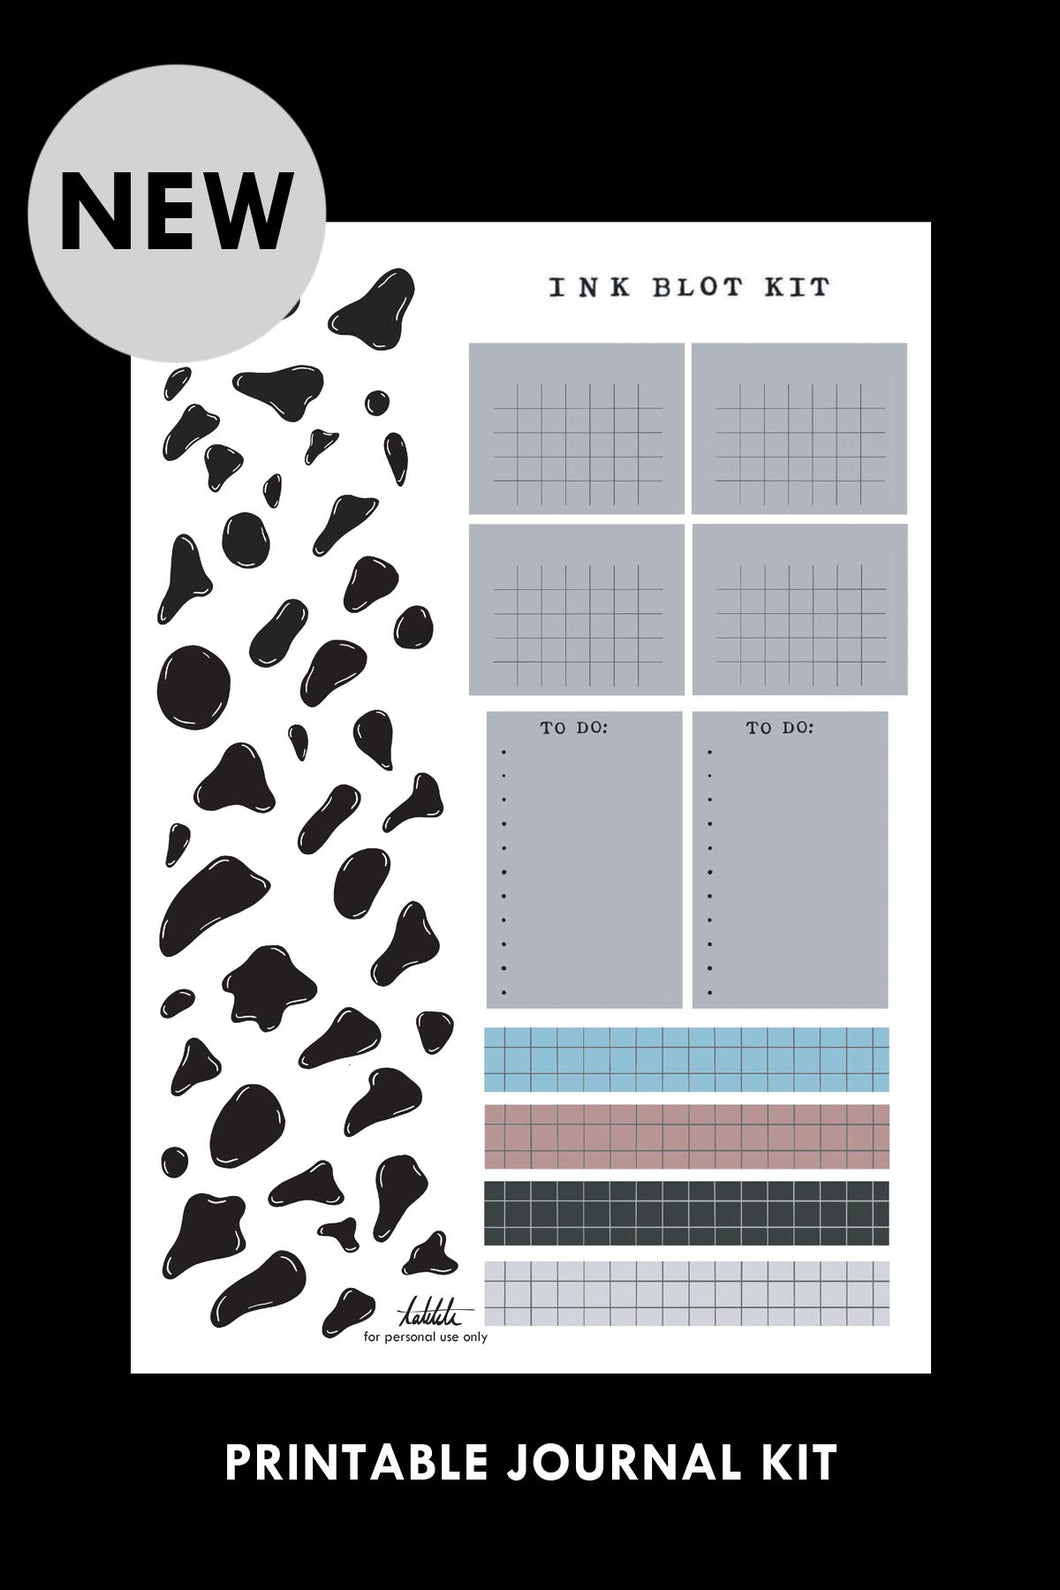 ink blot printable kit PDF - takkti